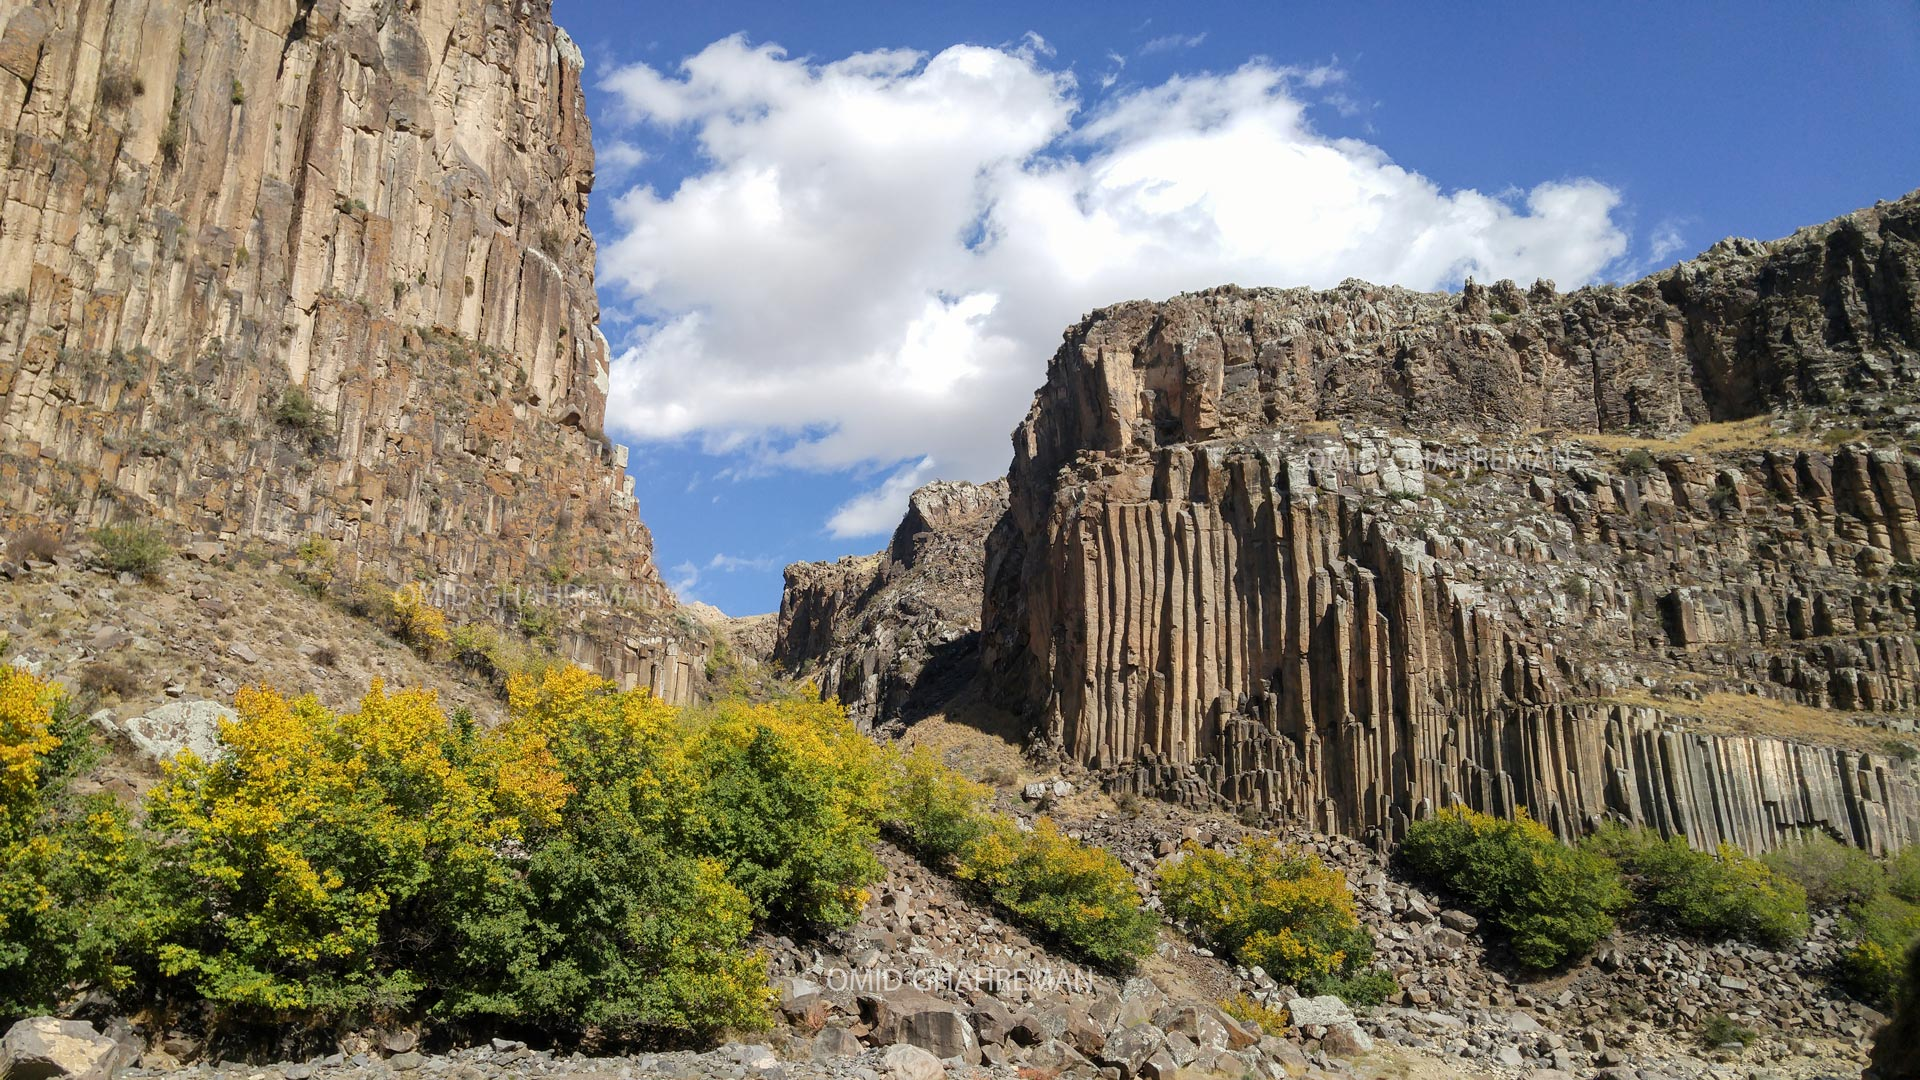 دره قیرمیزیلیخ و منشور های بازالتی Basalt columns and Girmizilix of the maku